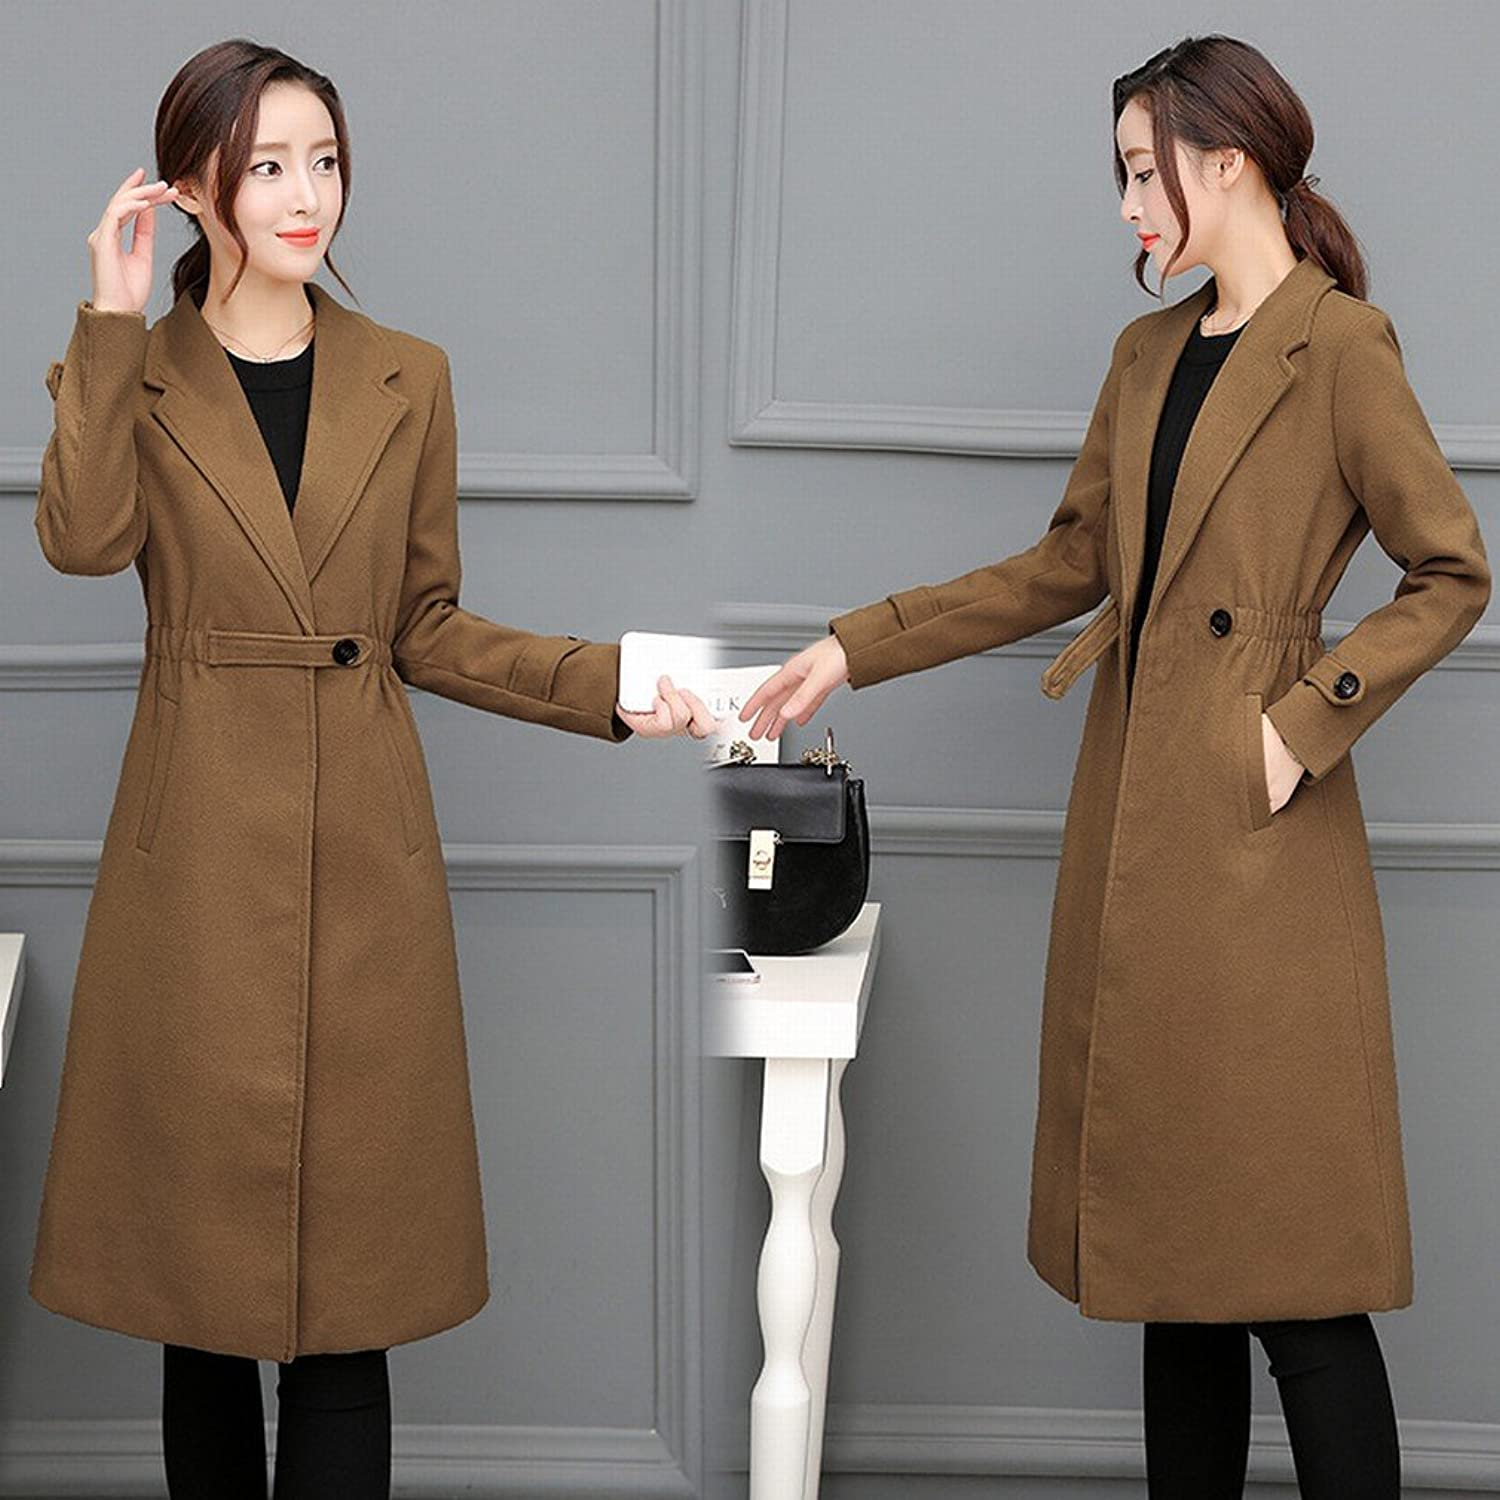 DEED Women's CoatWoolen Coat in The Long Section of Autumn and Winter Clothing Coat Casual Wear Waist Coat Female Wave